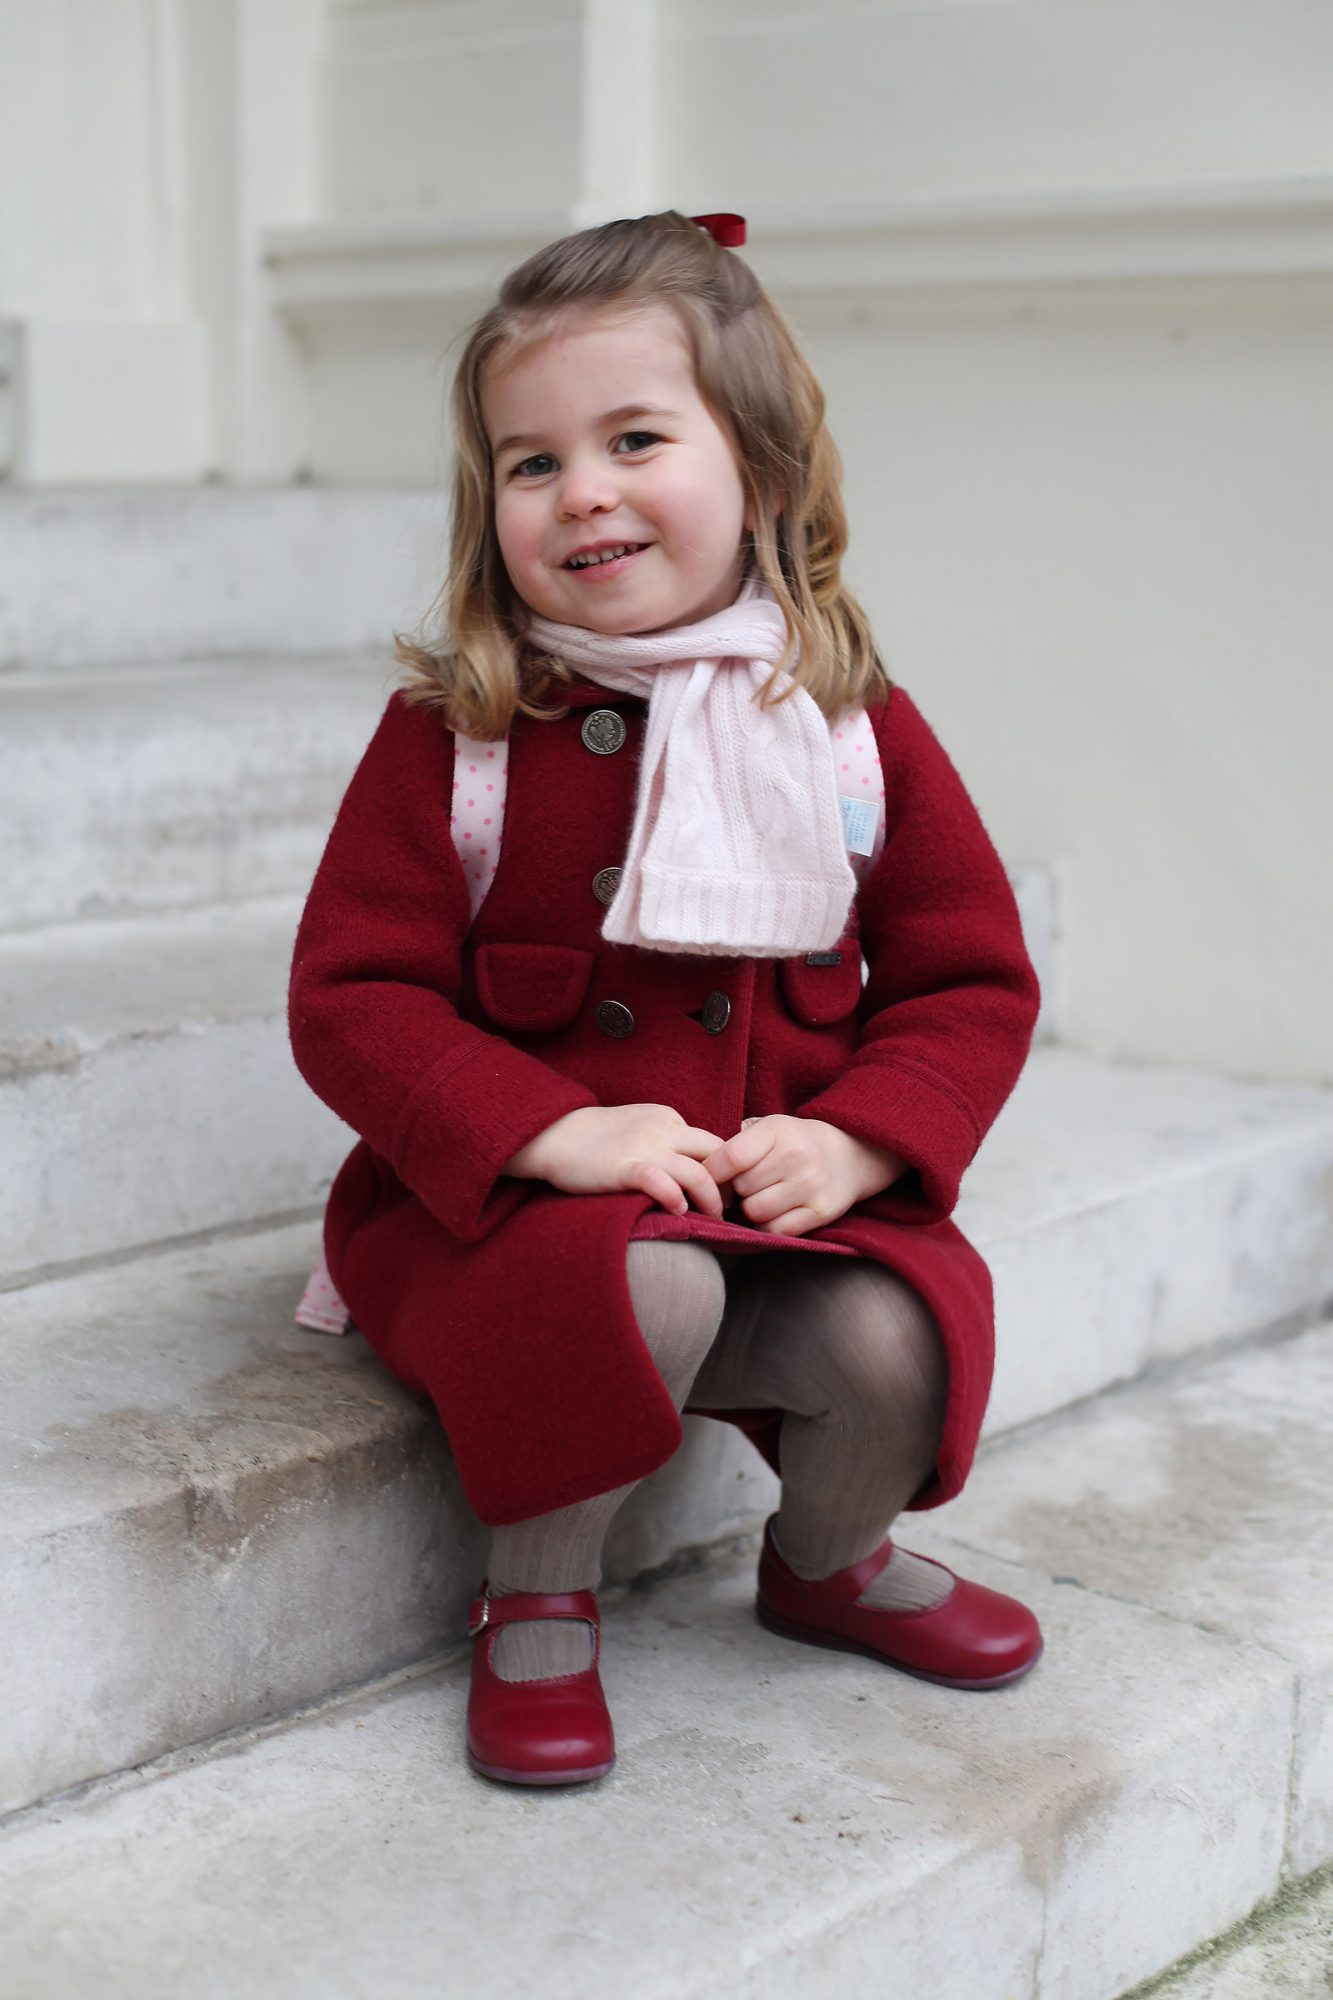 Princess Charlotte attends nursey, London, United Kingdom - 08 Jan 2018